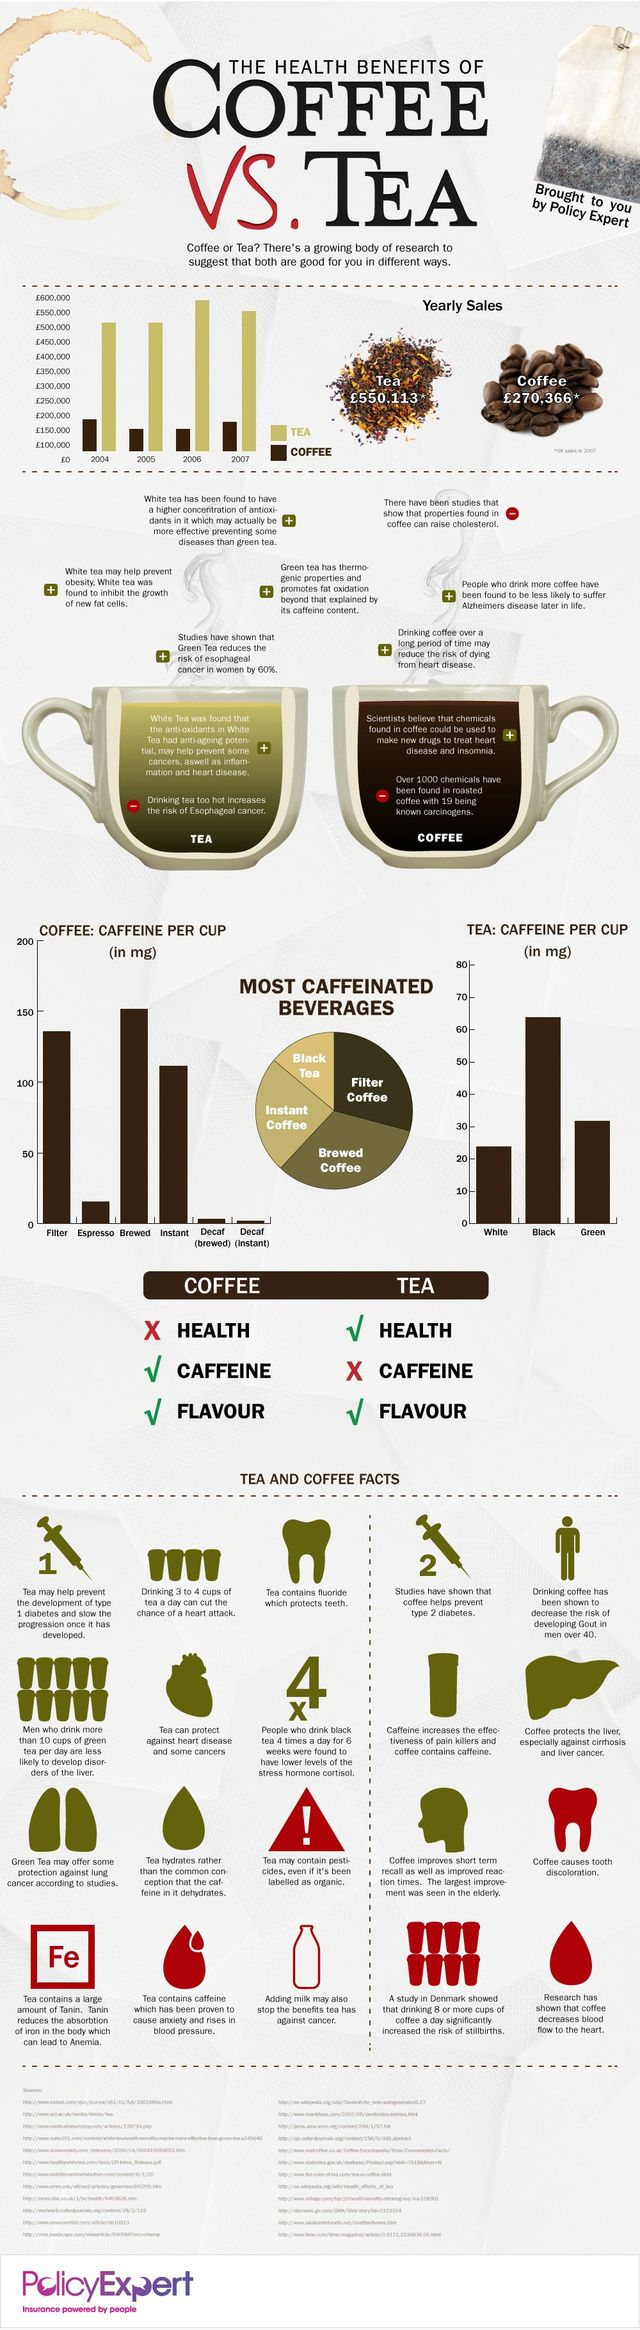 The Coffee Vs Tea Infographic Lays Out Each Drink S Benefits Side By Side Coffee Health Benefits Tea Health Benefits Tea Infographic